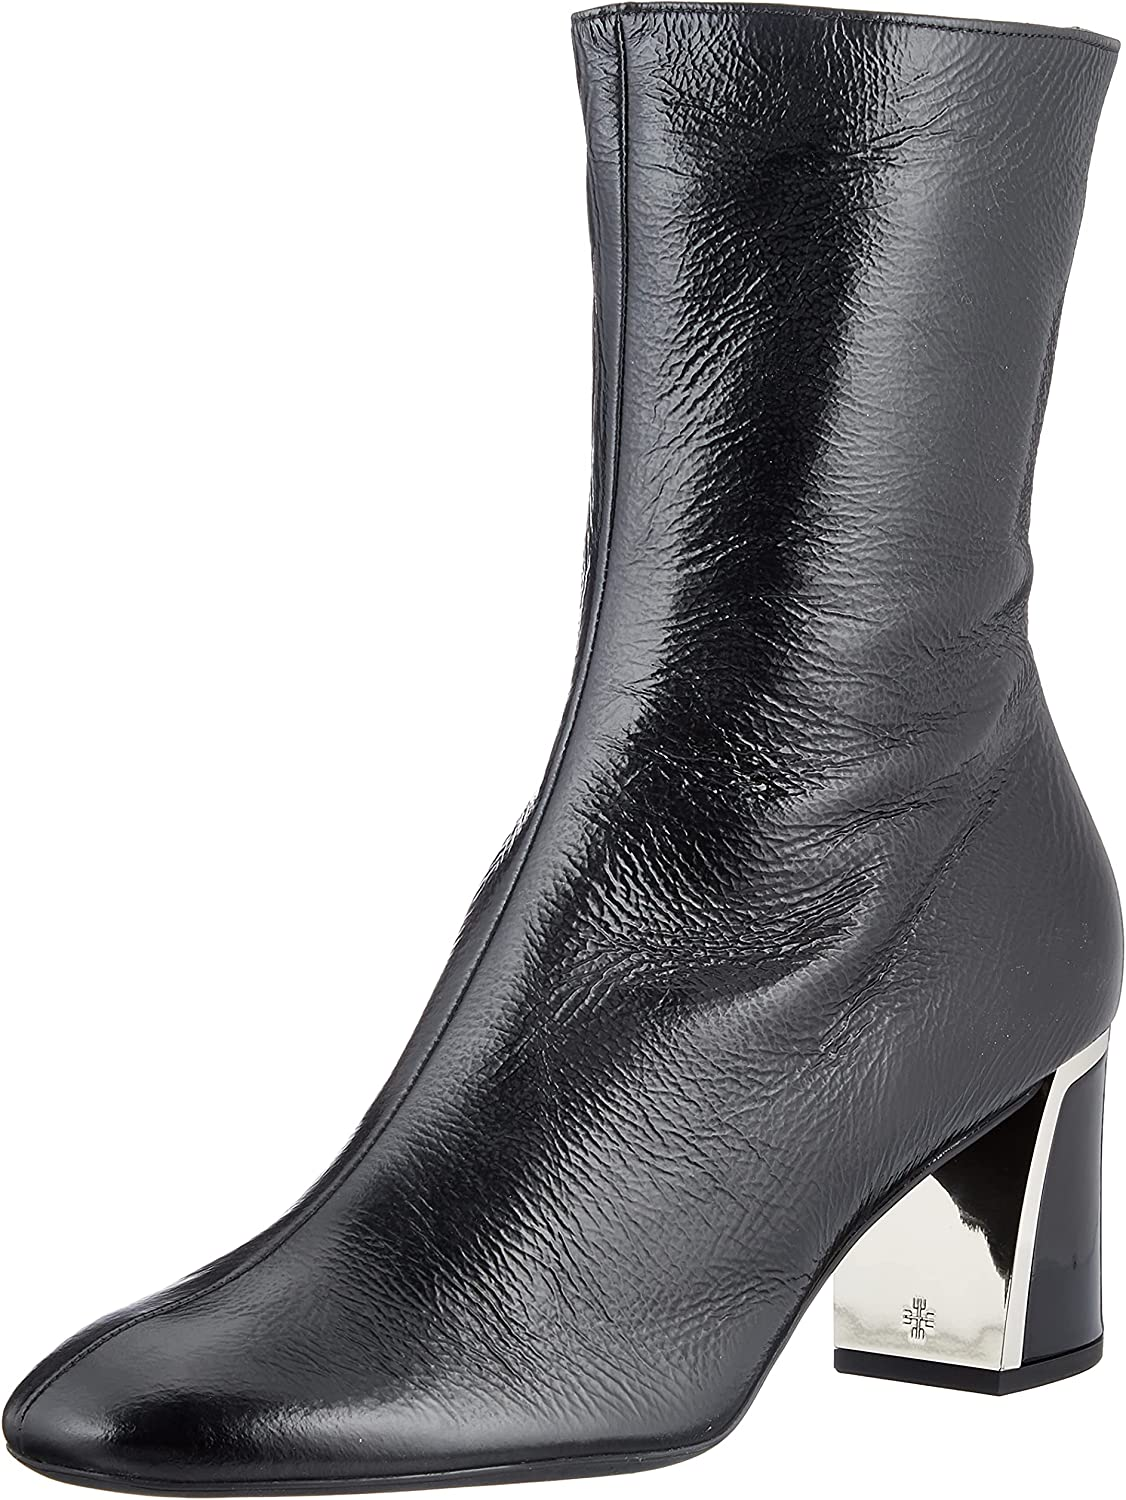 HÖGL Women's Shipping included Ranking TOP5 Excellence Ankle Boots